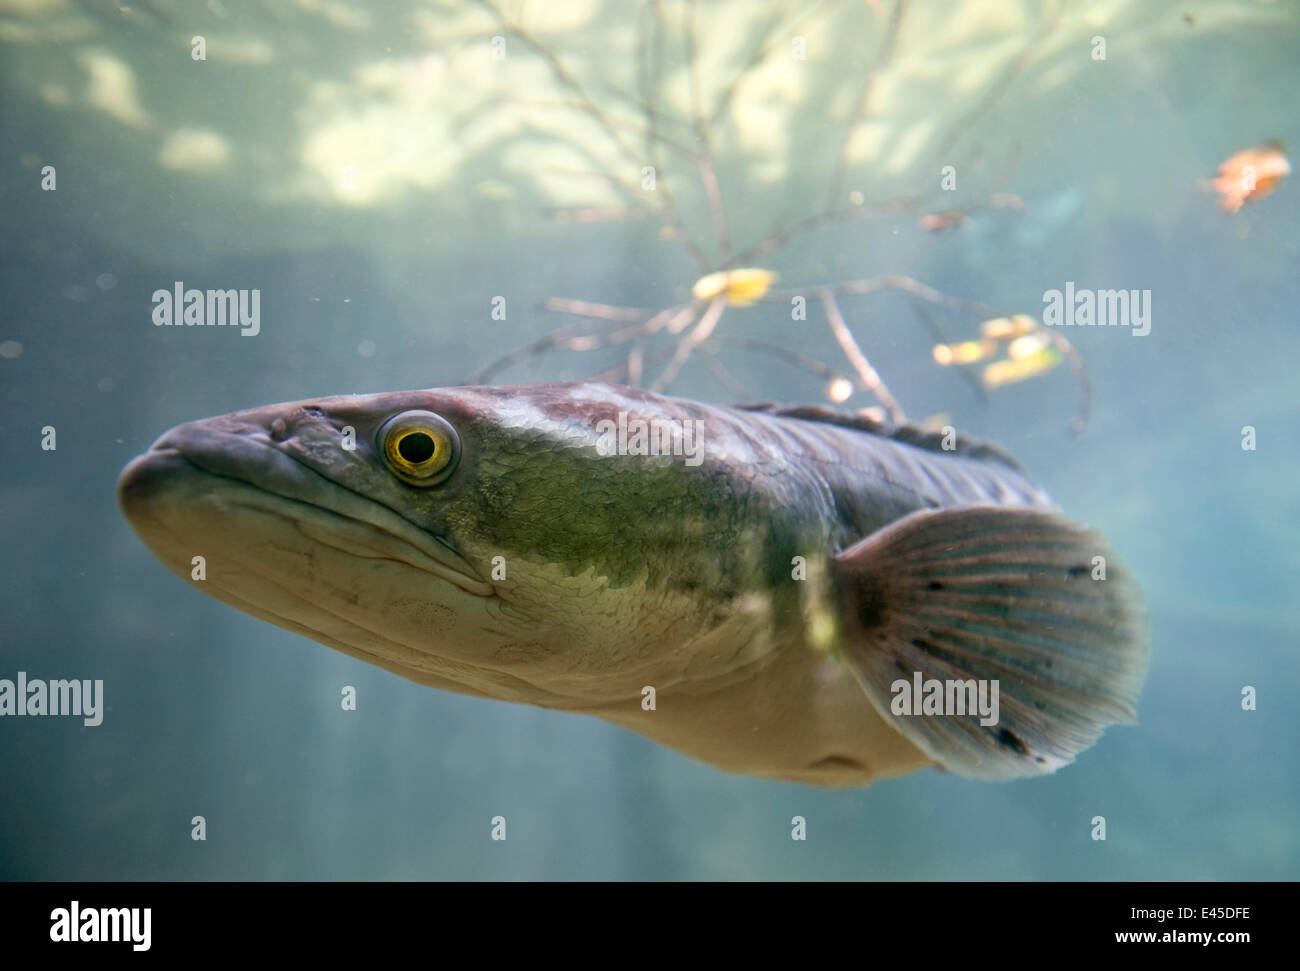 Giant snakehead / Toman (Channa micropeltes)Found in freshwater / flooded swamp areas. From SE Asia including Borneo. - Stock Image